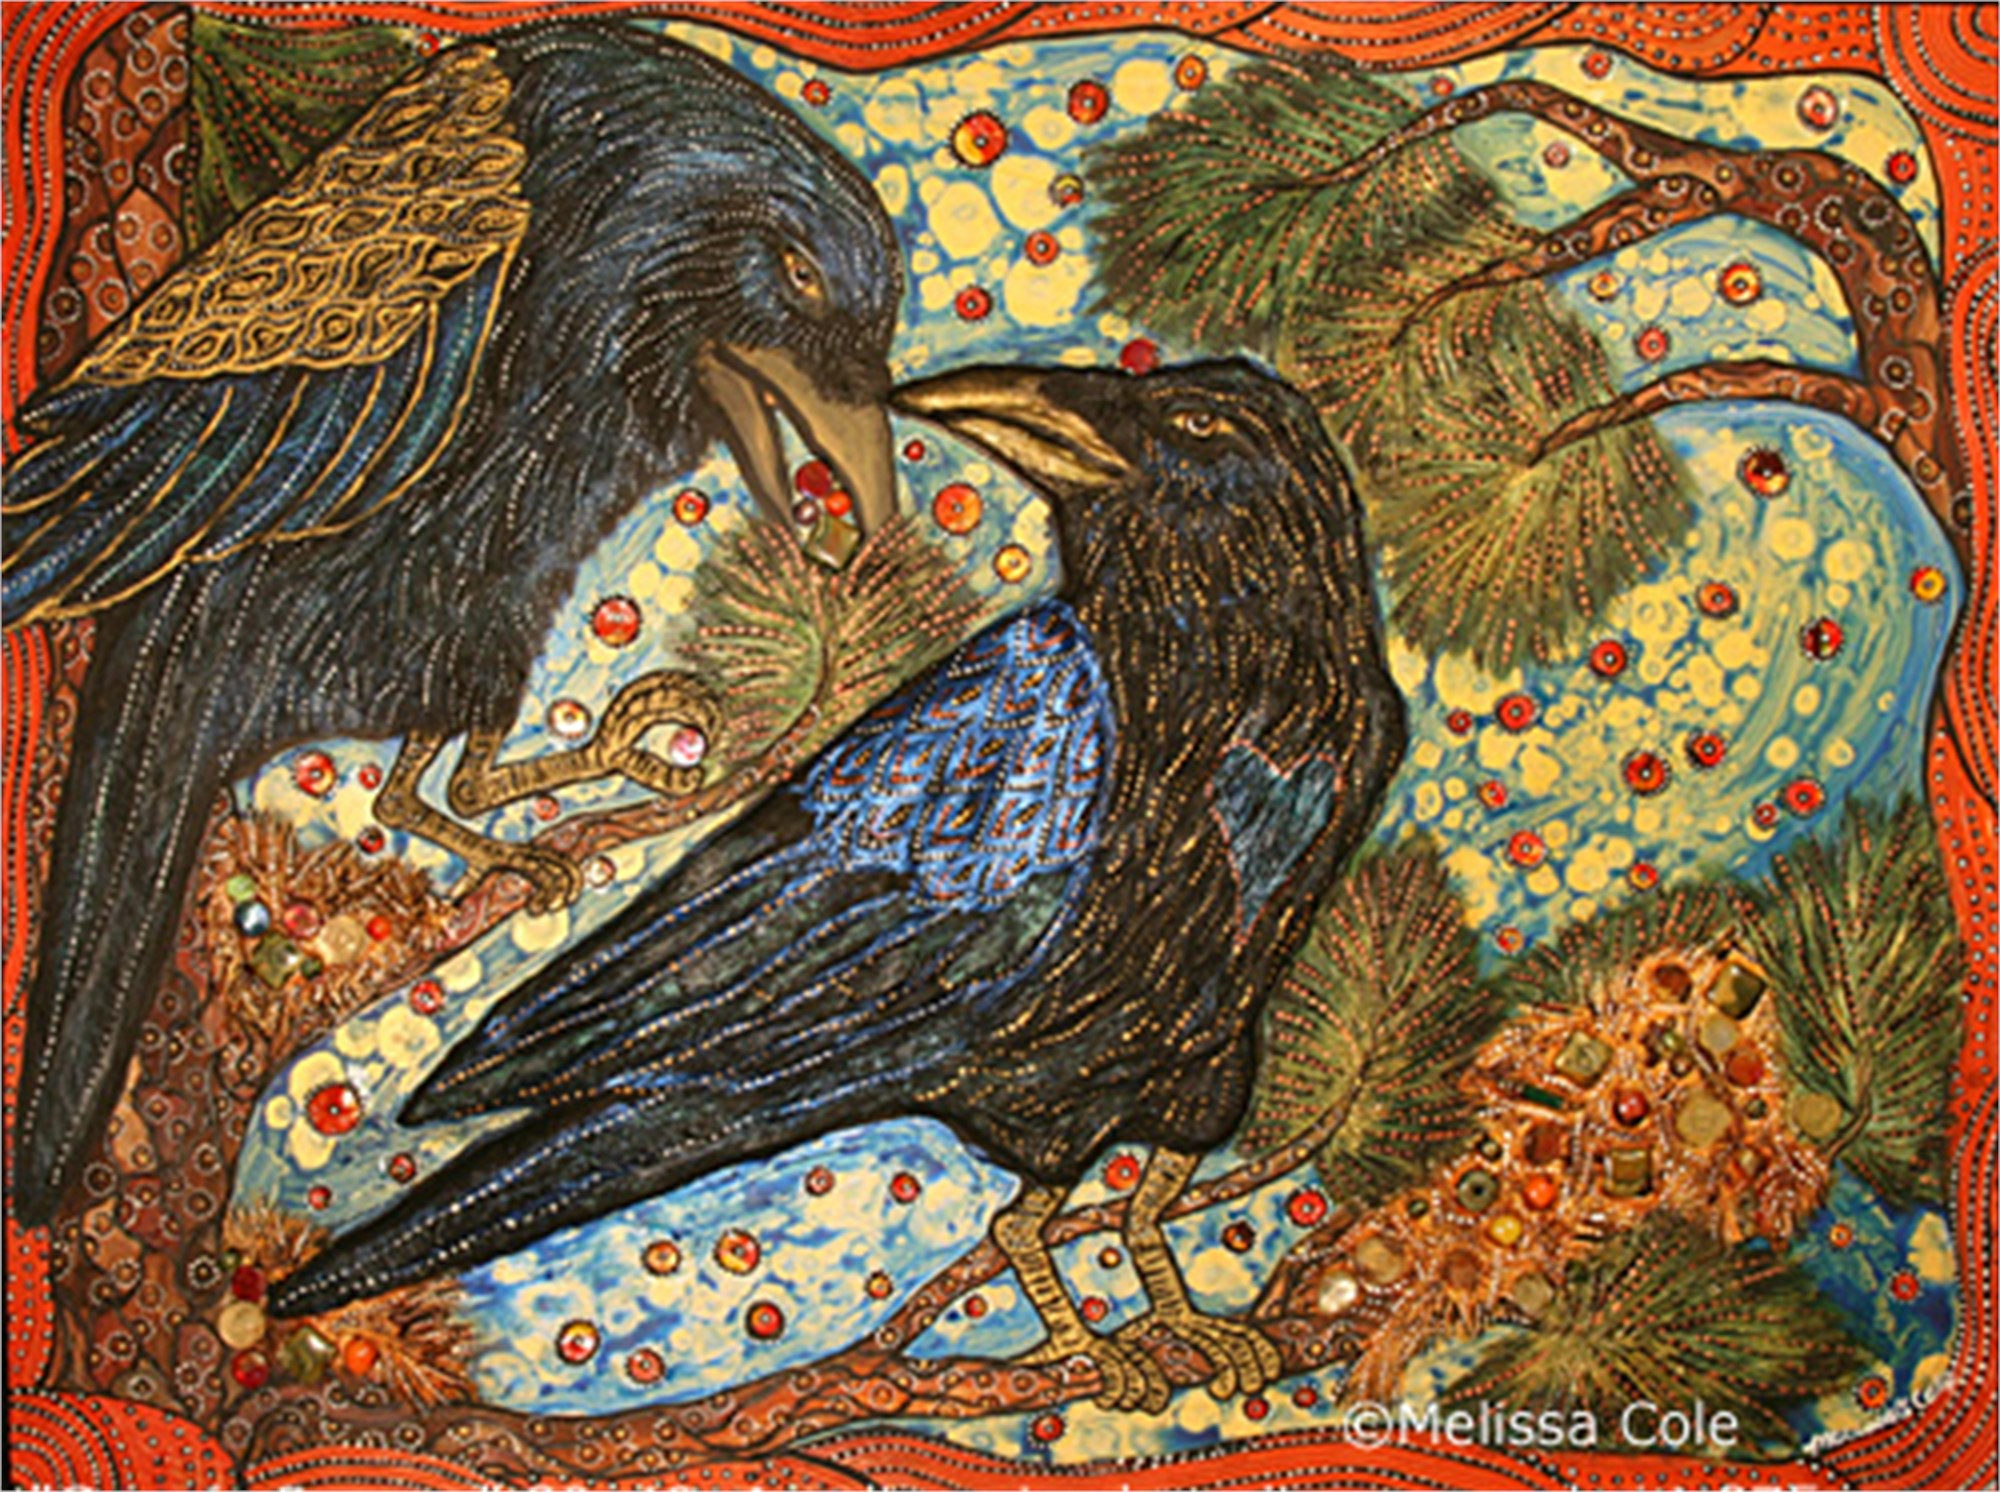 Greedy Ravens by Melissa Cole